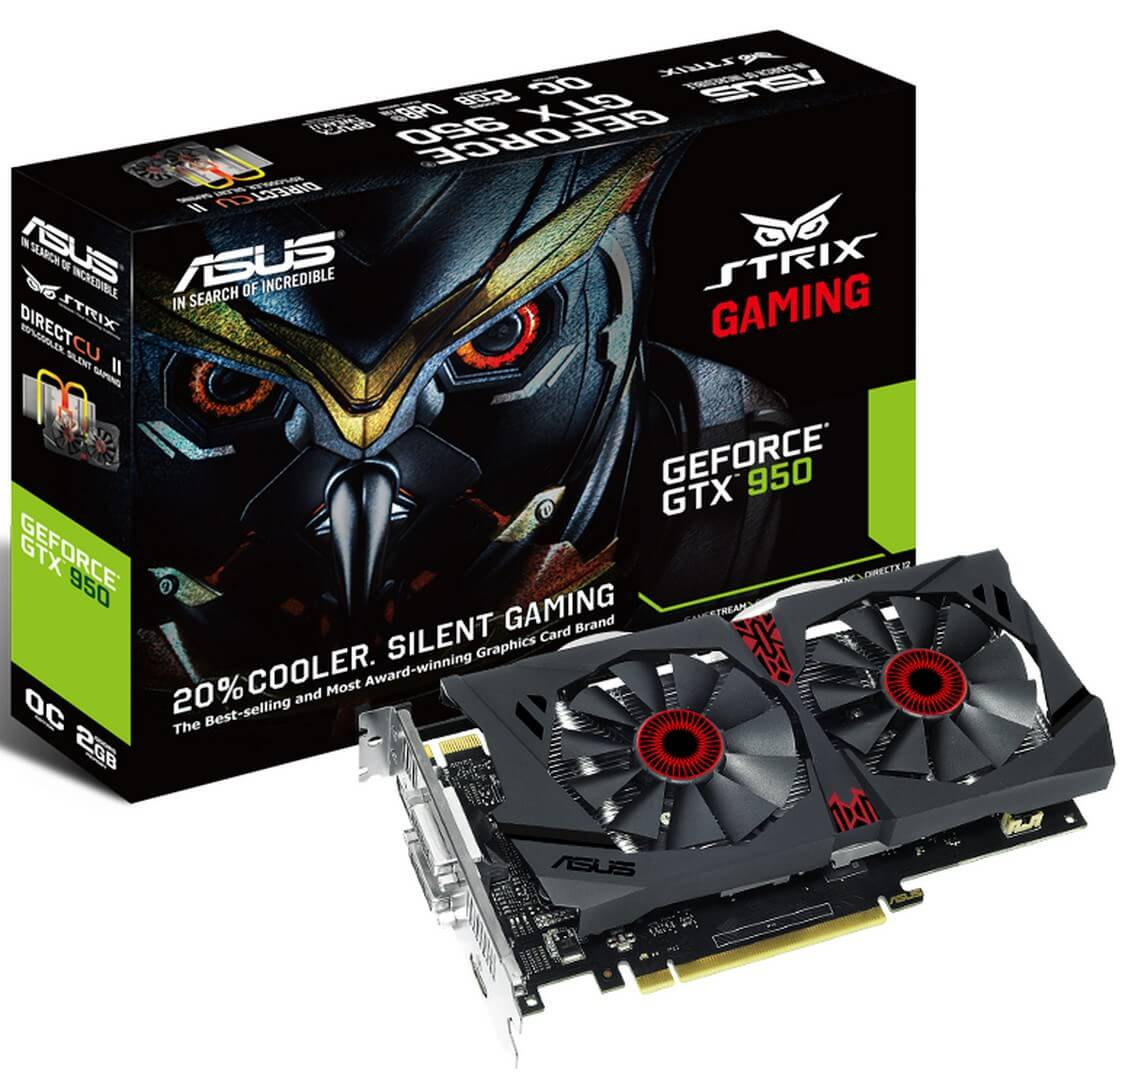 Картинка Видеокарта ASUS GeForce GTX950 STRIX, 2Gb, 128bit, HDMI, (GTX950-DC2OC-2GD5-GAMING) от магазина NBS Parts